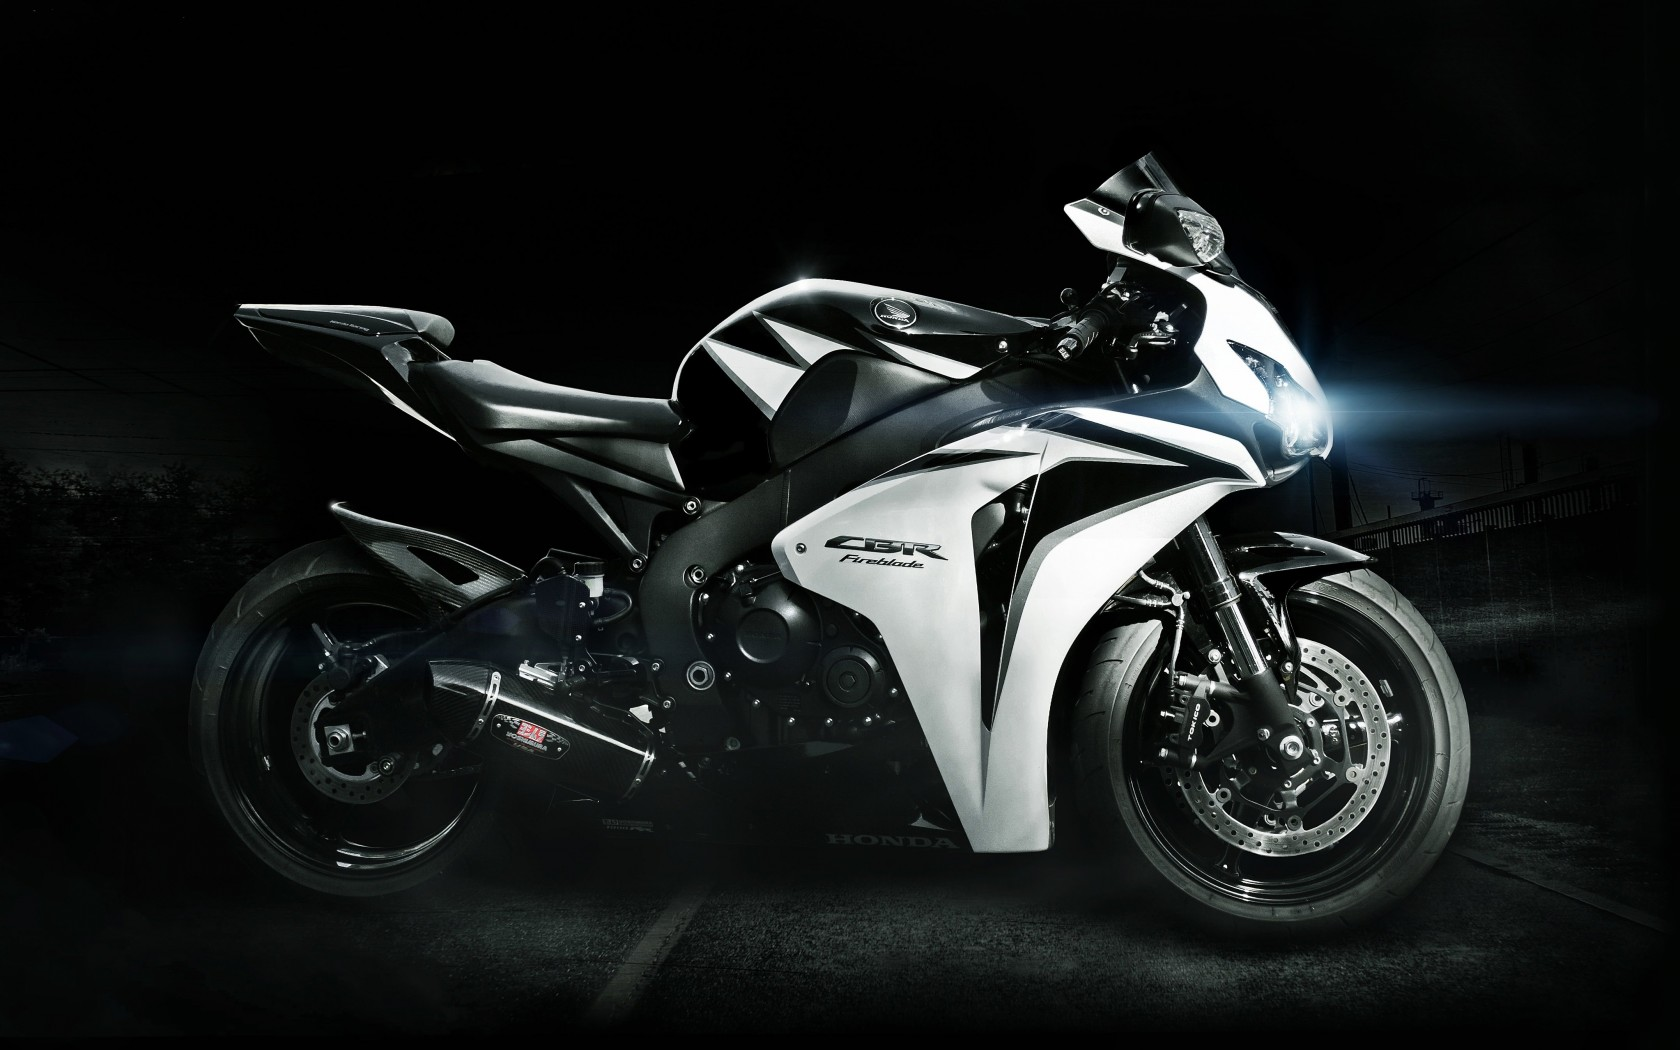 Honda CBR Fireblade Wallpaper for Desktop 1680x1050